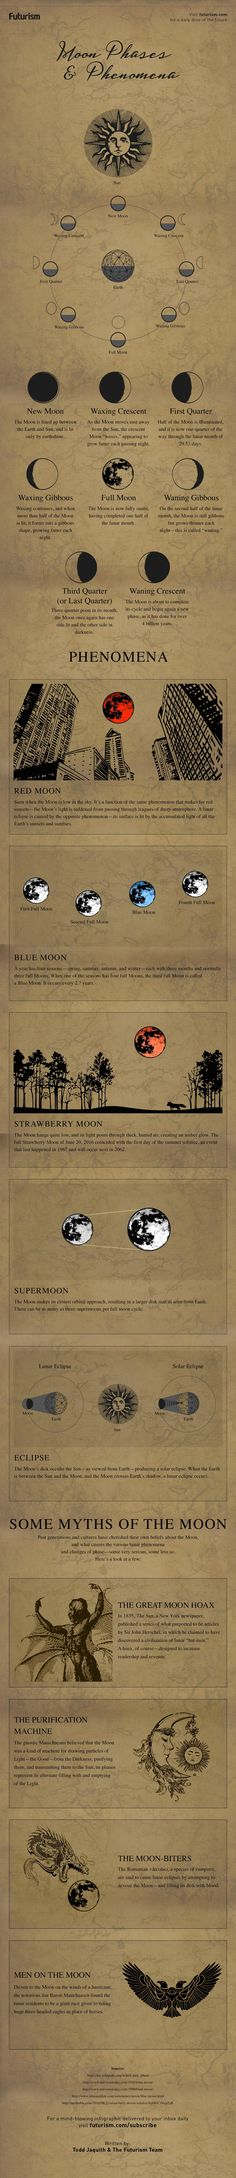 Moon phases and phenomena